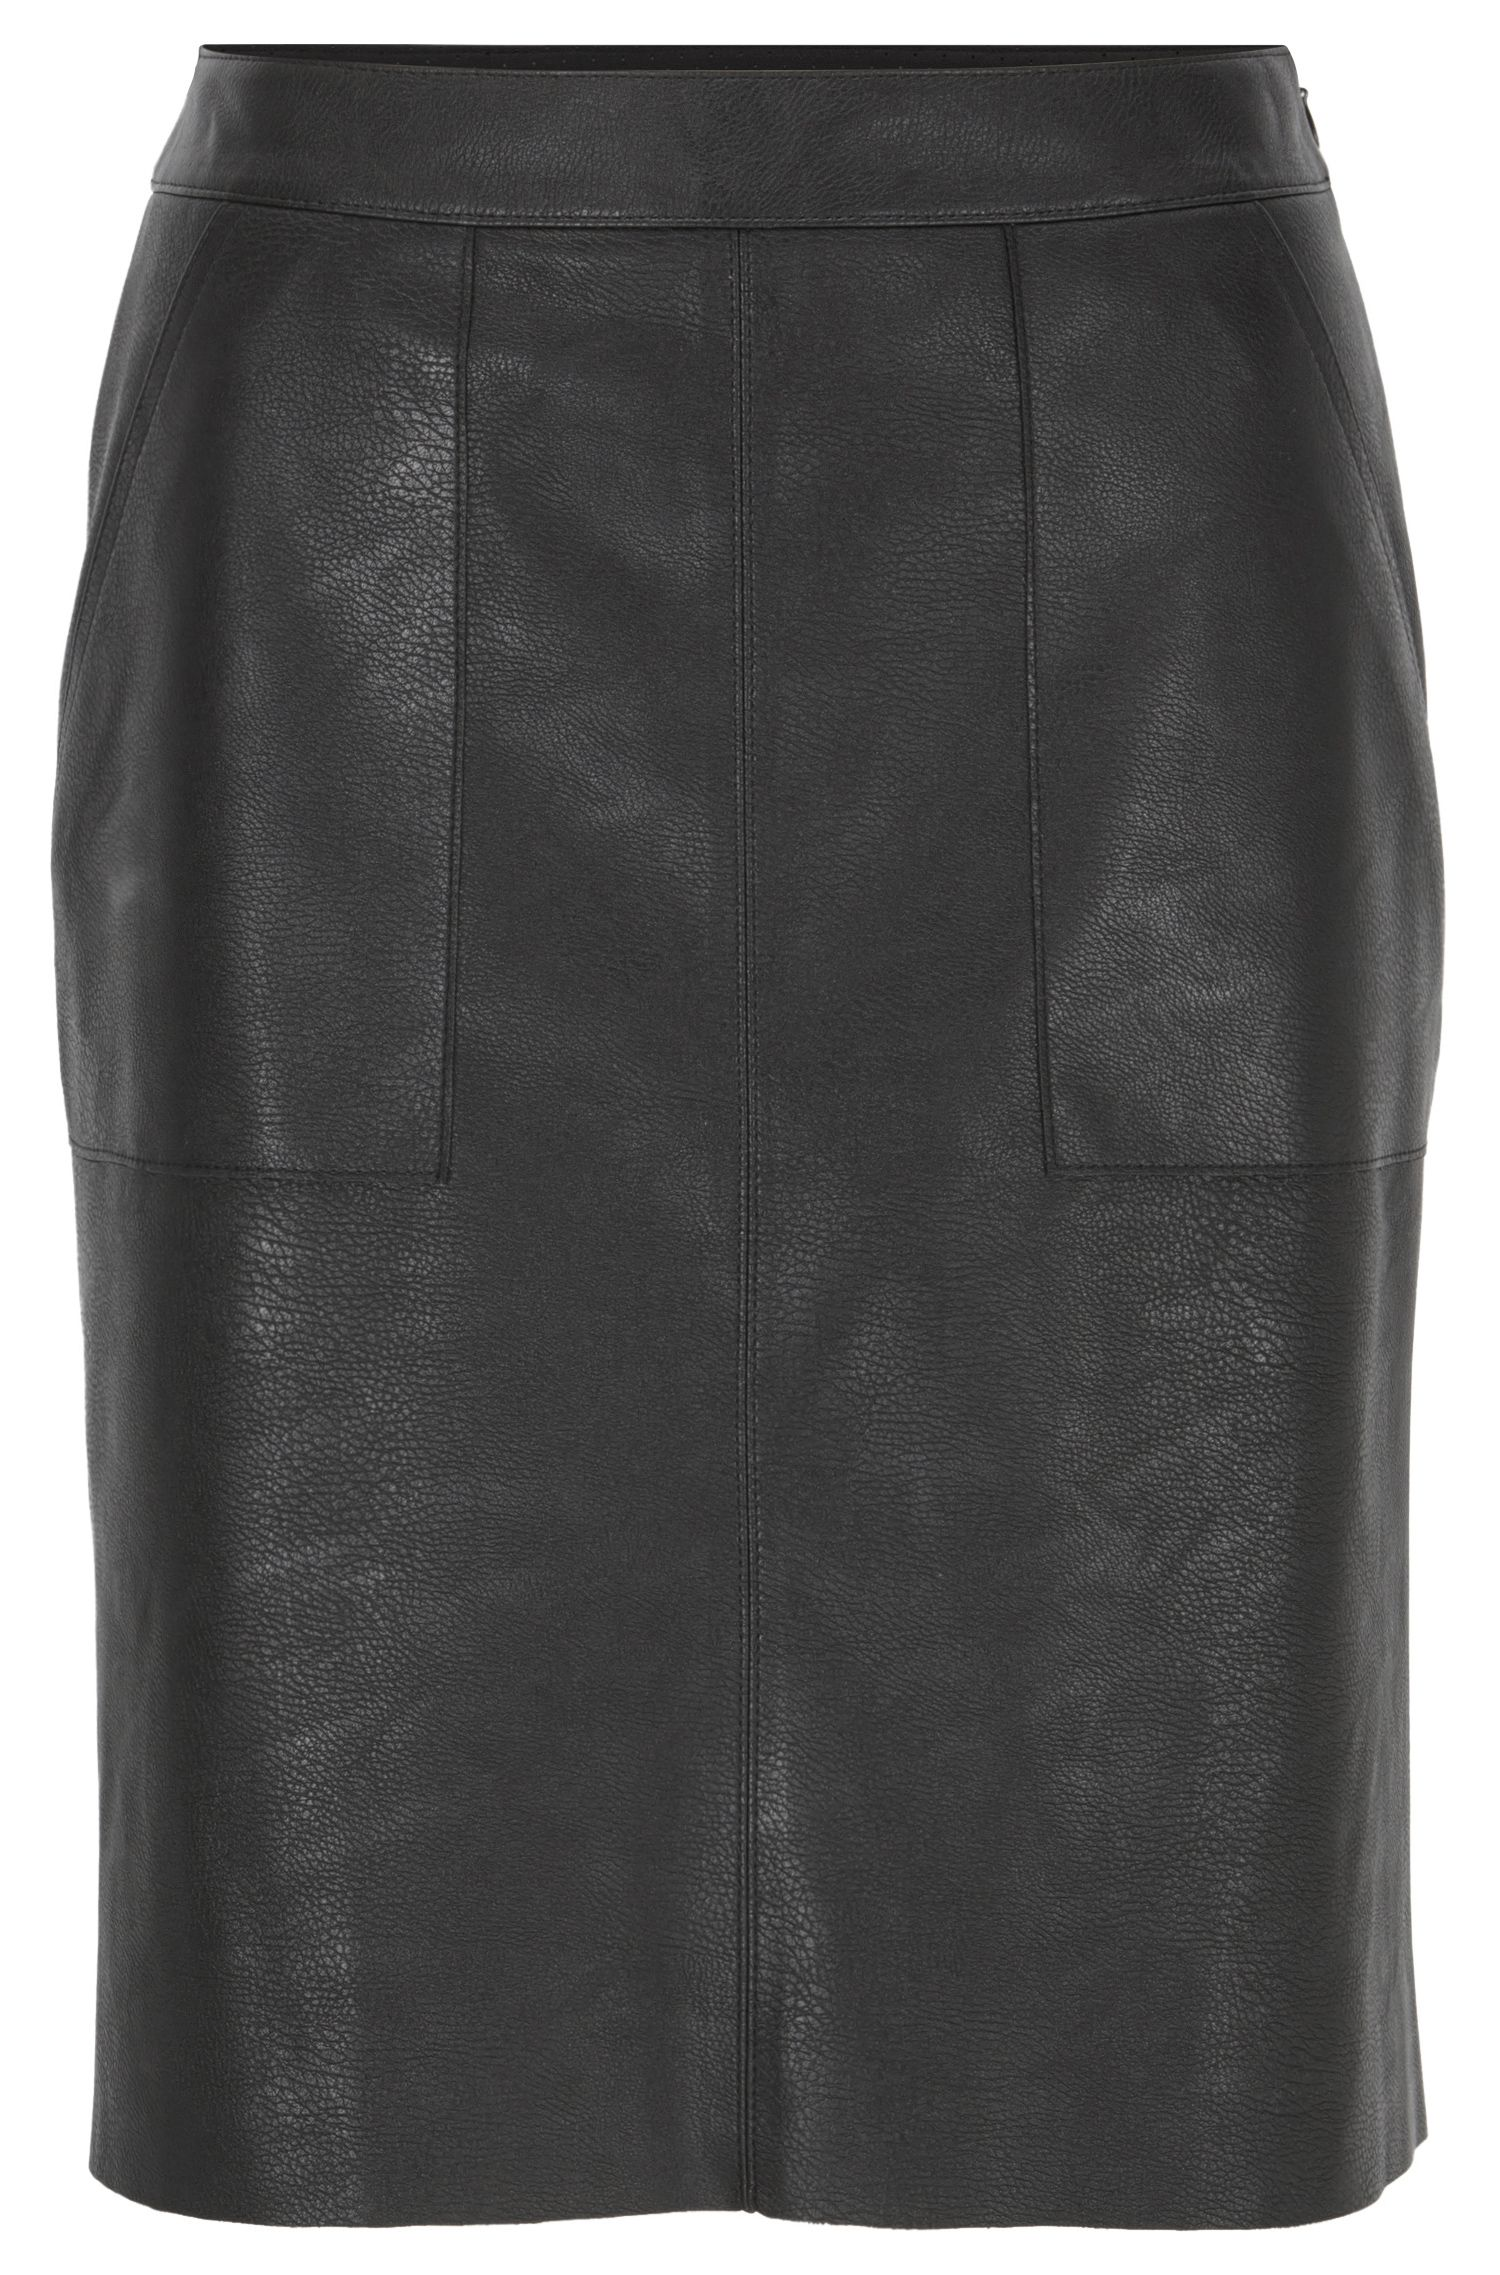 Faux-leather A-line skirt with patch pockets